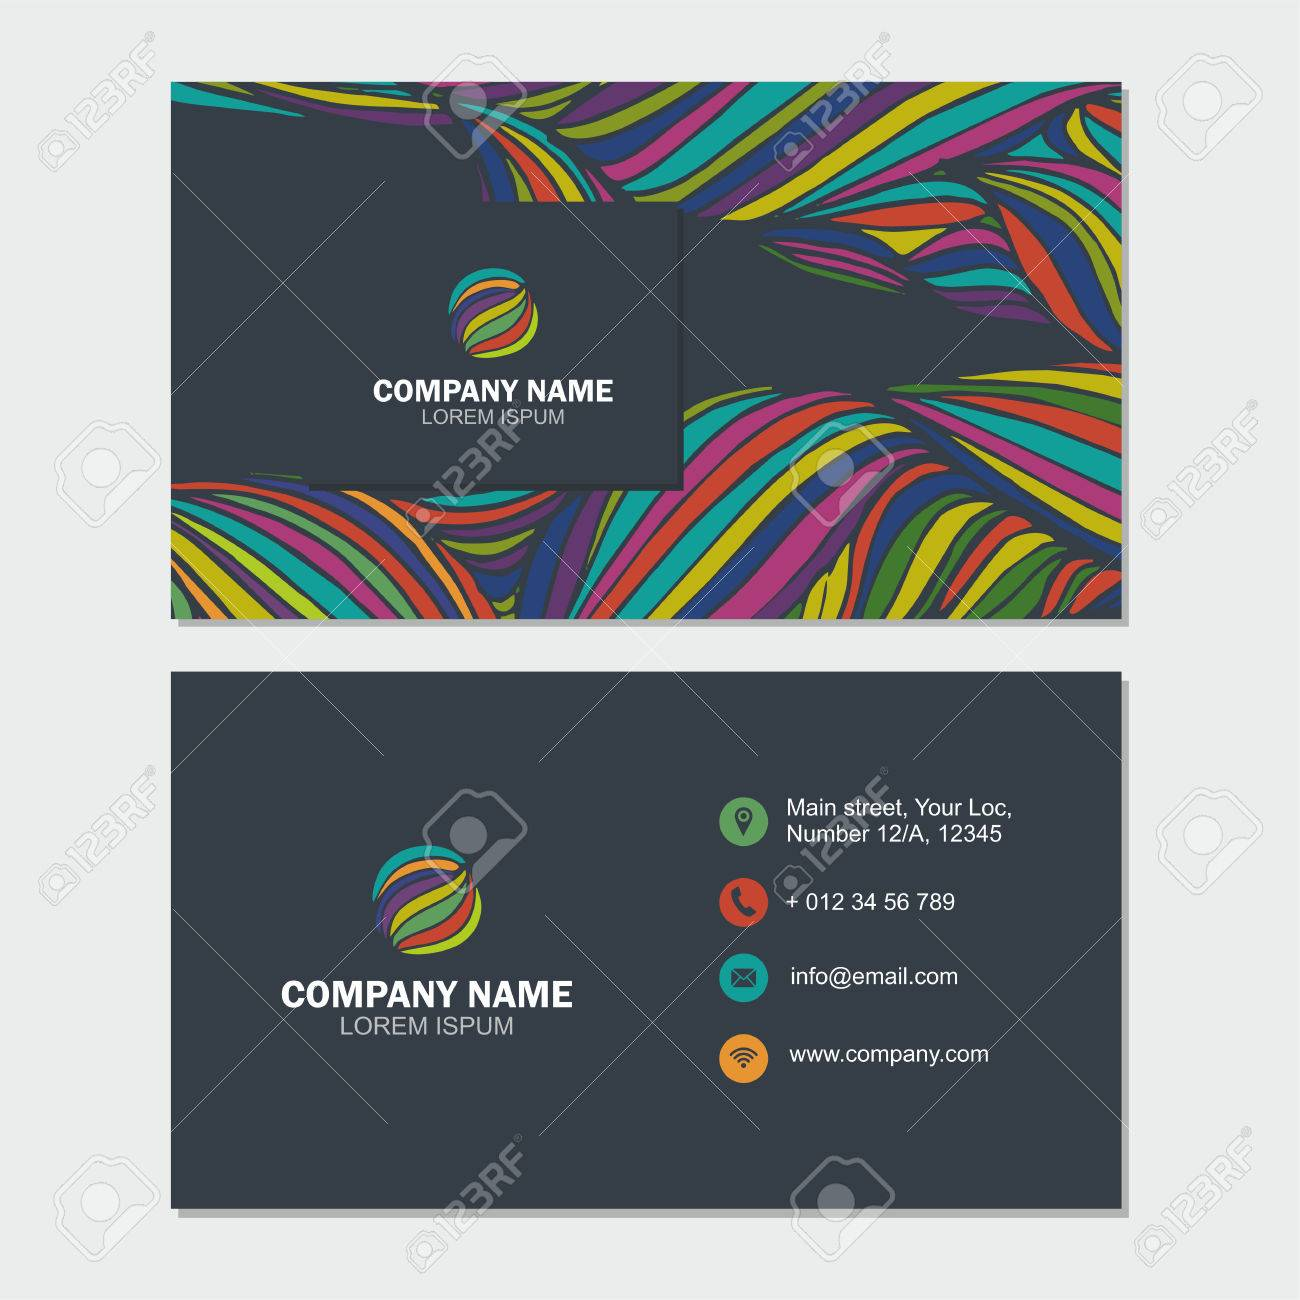 Business card or visiting card template with abstract logo element business card or visiting card template with abstract logo element flower vector design editable template accmission Choice Image